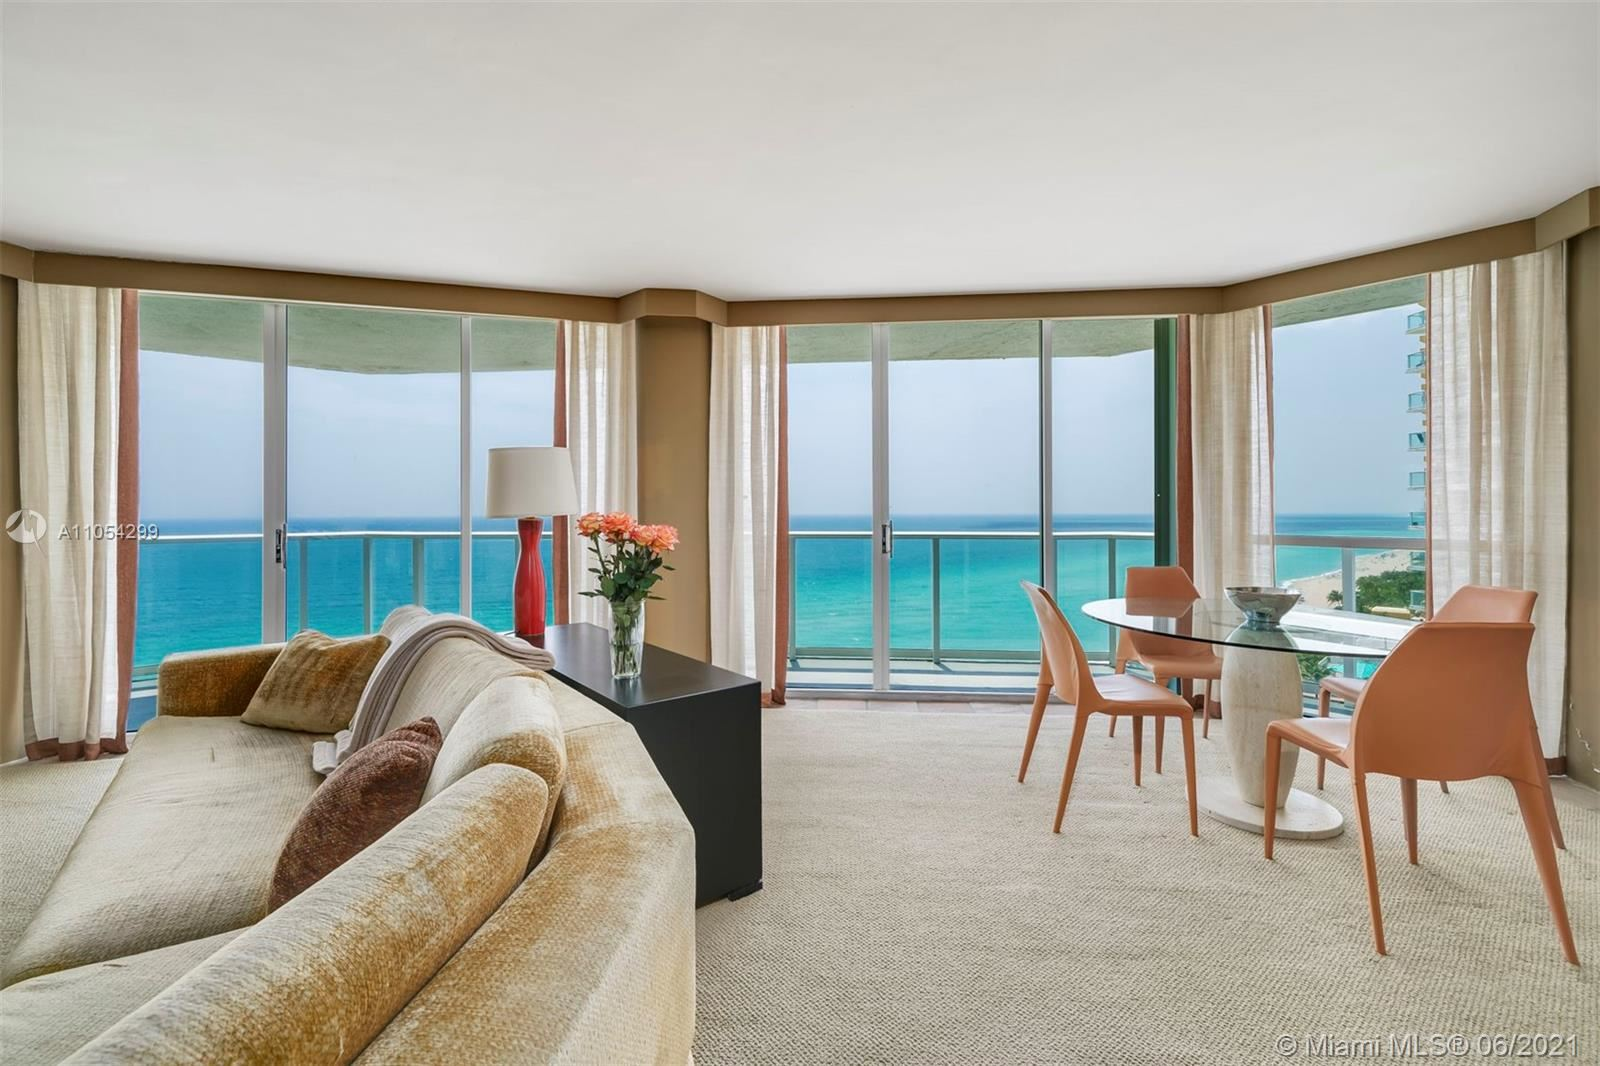 16485 Collins Ave #1431, Sunny Isles, FL 33160 - #: A11054299